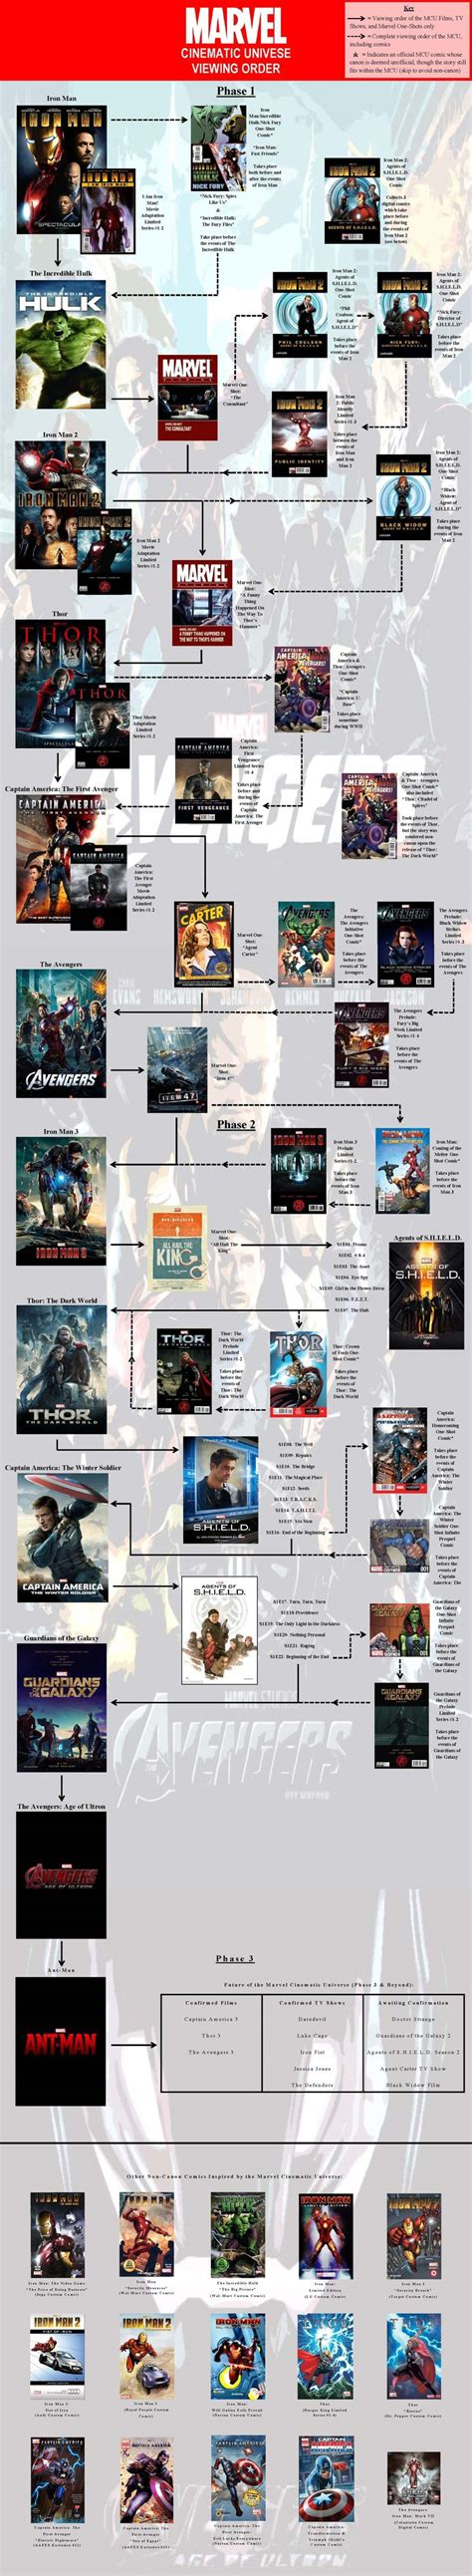 the definitive chronological viewing order for the marvel marvel cinematic universe viewing order updated